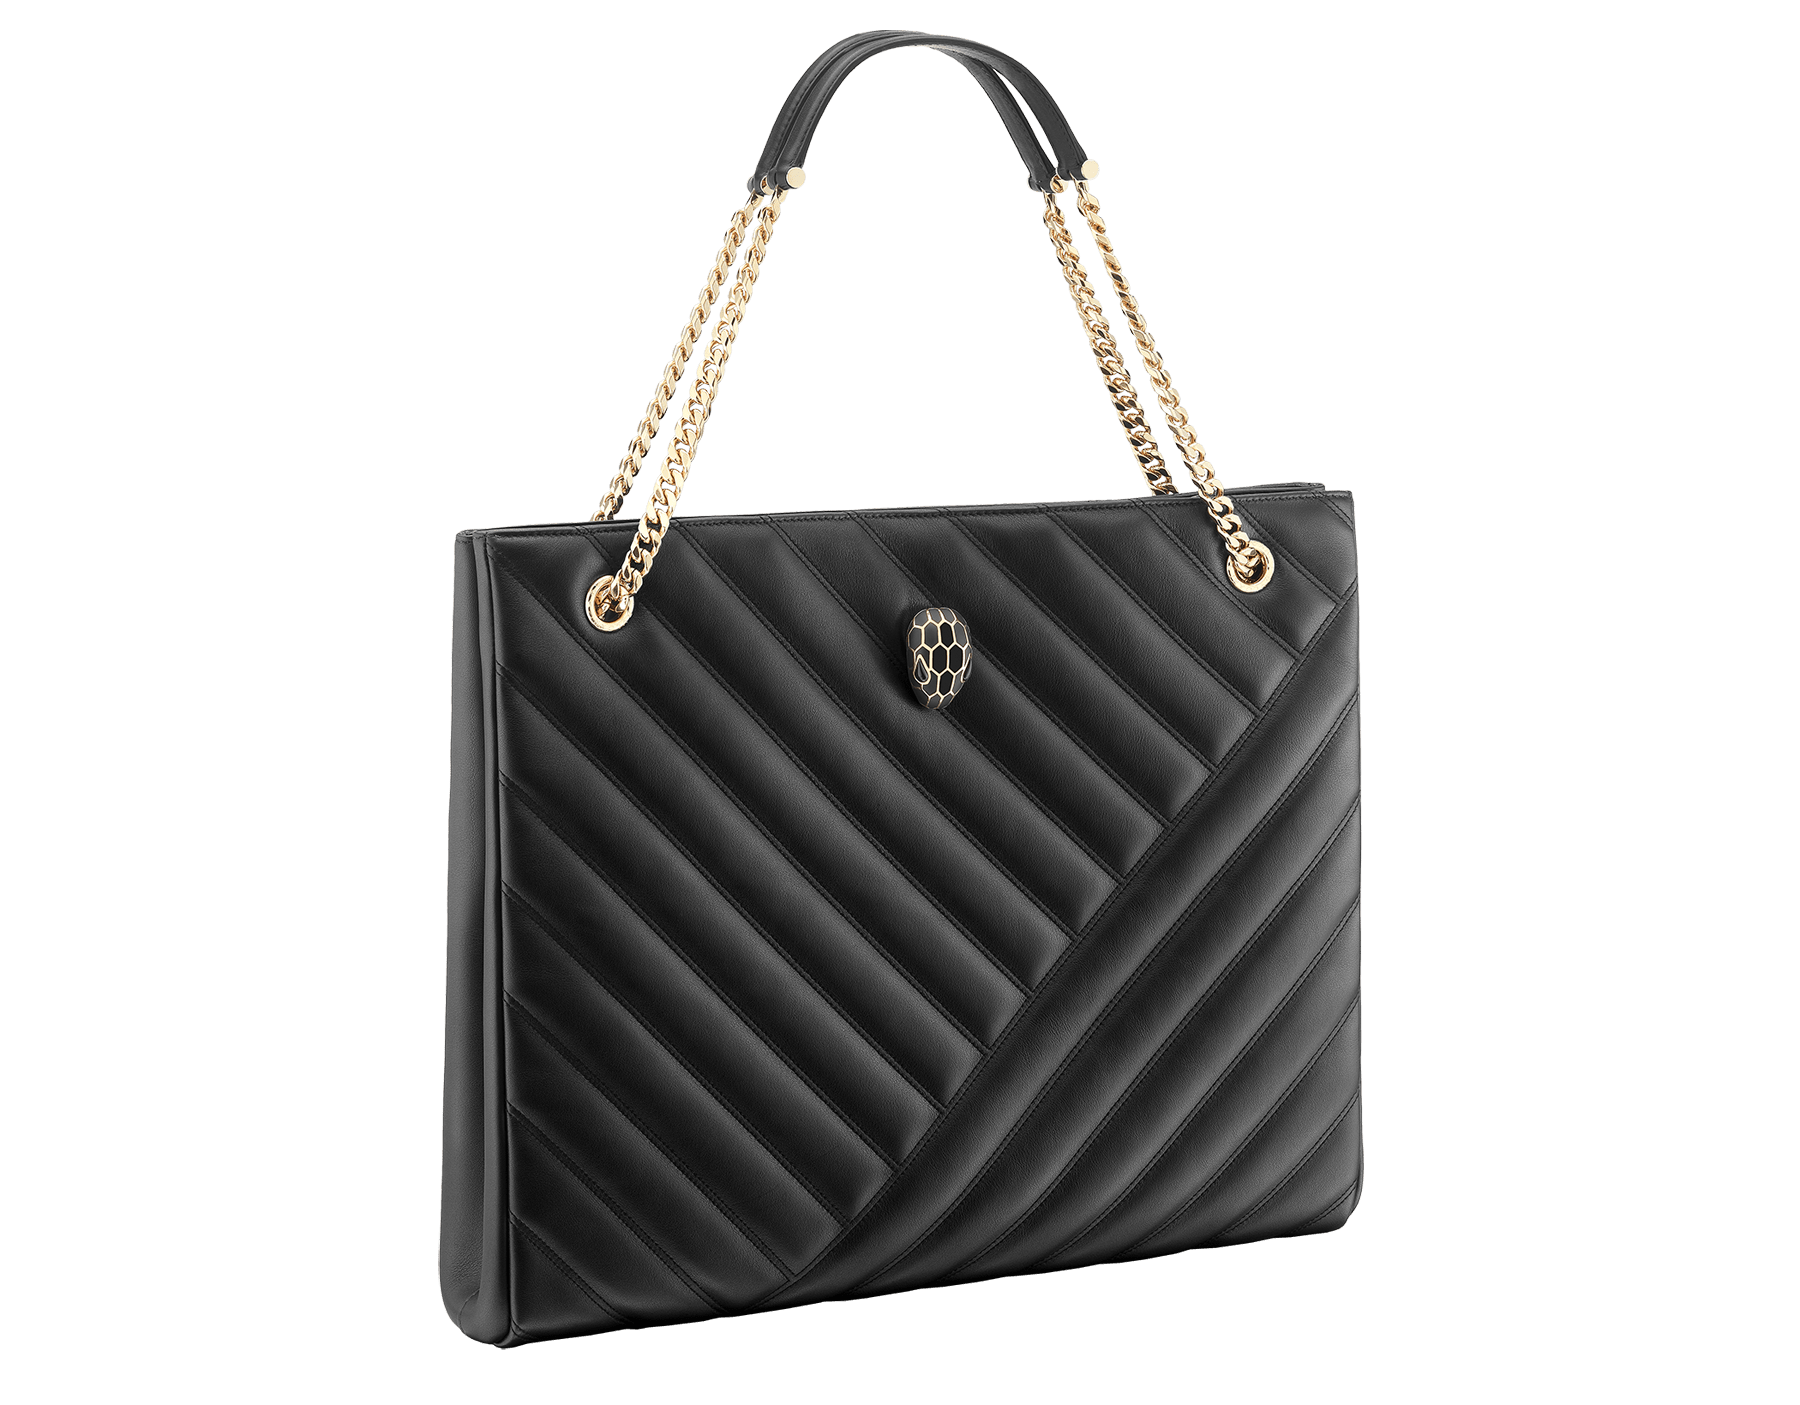 Serpenti Cabochon tote bag in soft matelassé black nappa leather with graphic motif and black calf leather. Snakehead decòr in rose gold plated brass embellished with matte black and shiny black enamel, and black onyx eyes. 287996 image 2